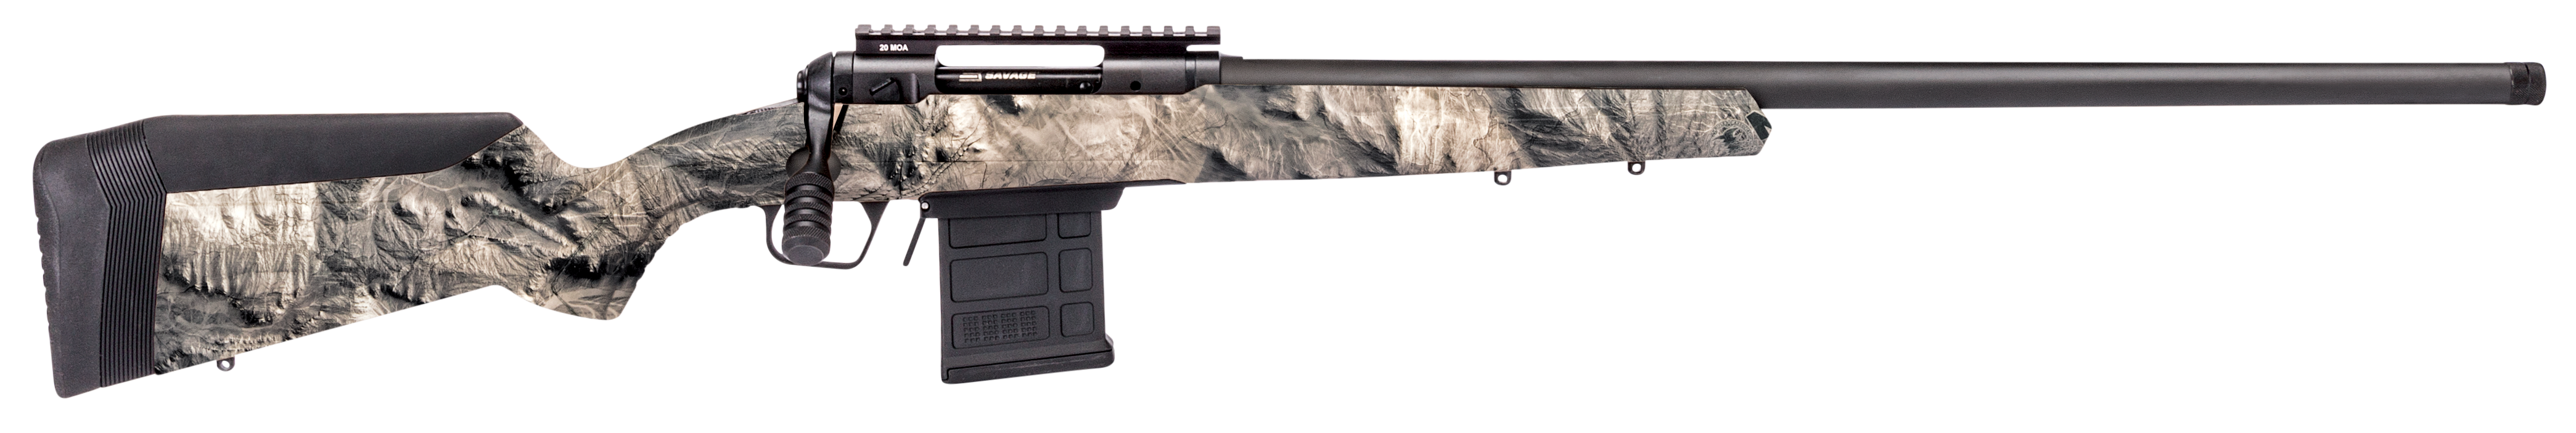 Savage Arms 110 Ridge Warrior 6.5 Creedmoor